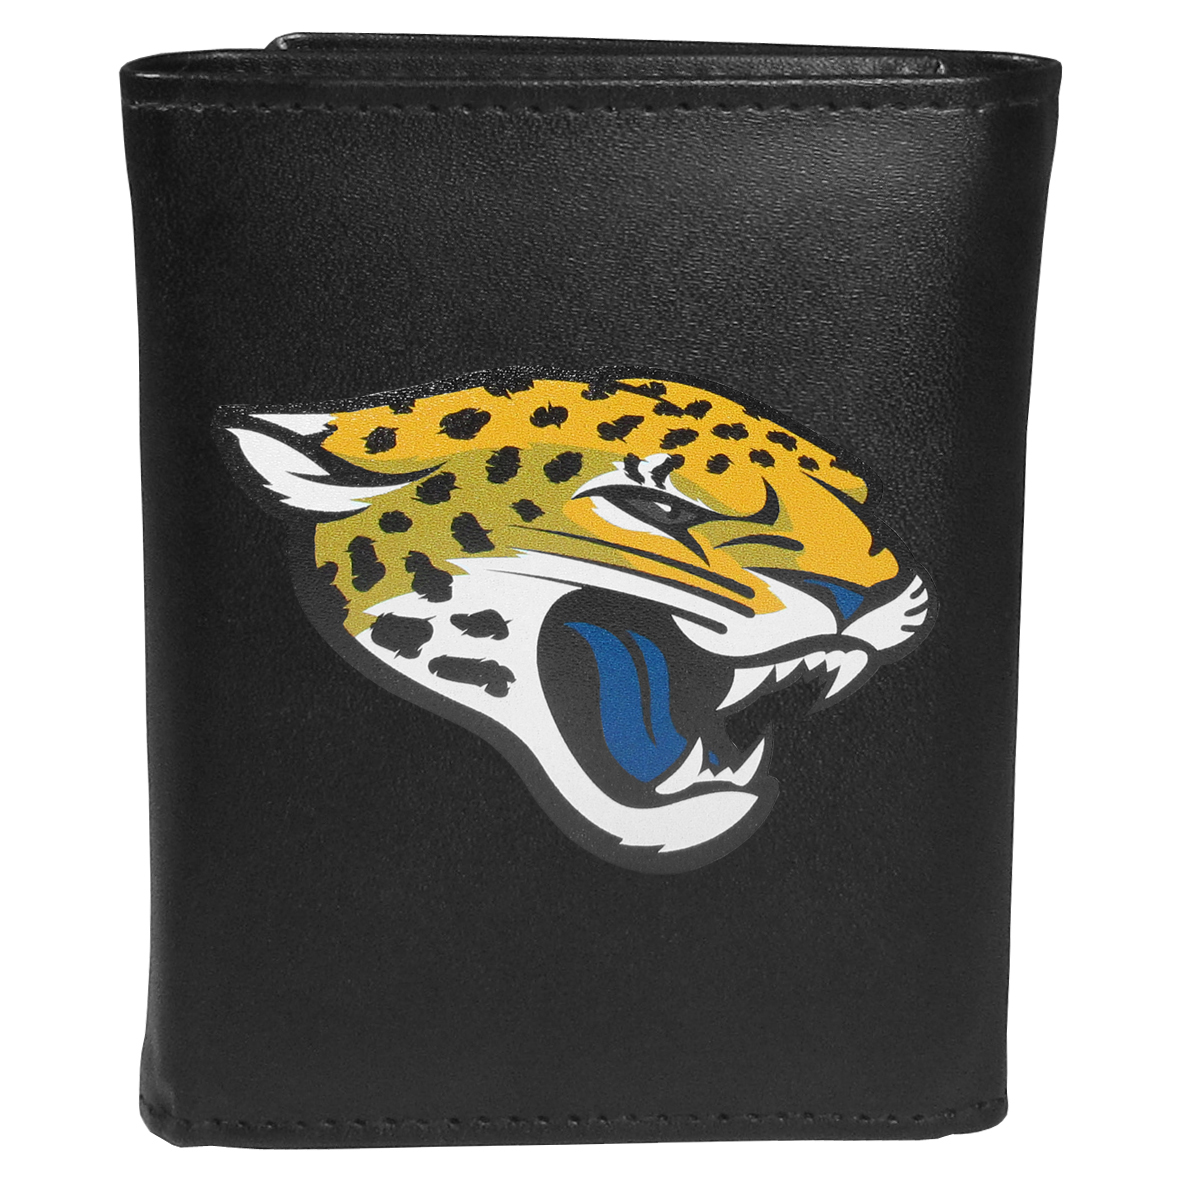 Jacksonville Jaguars Tri-fold Wallet Large Logo - Sports fans do not have to sacrifice style with this classic tri-fold wallet that sports theJacksonville Jaguars?extra large logo. This men's fashion accessory has a leather grain look and expert craftmanship for a quality wallet at a great price. The wallet features inner credit card slots, windowed ID slot and a large billfold pocket. The front of the wallet features an extra large printed team logo.